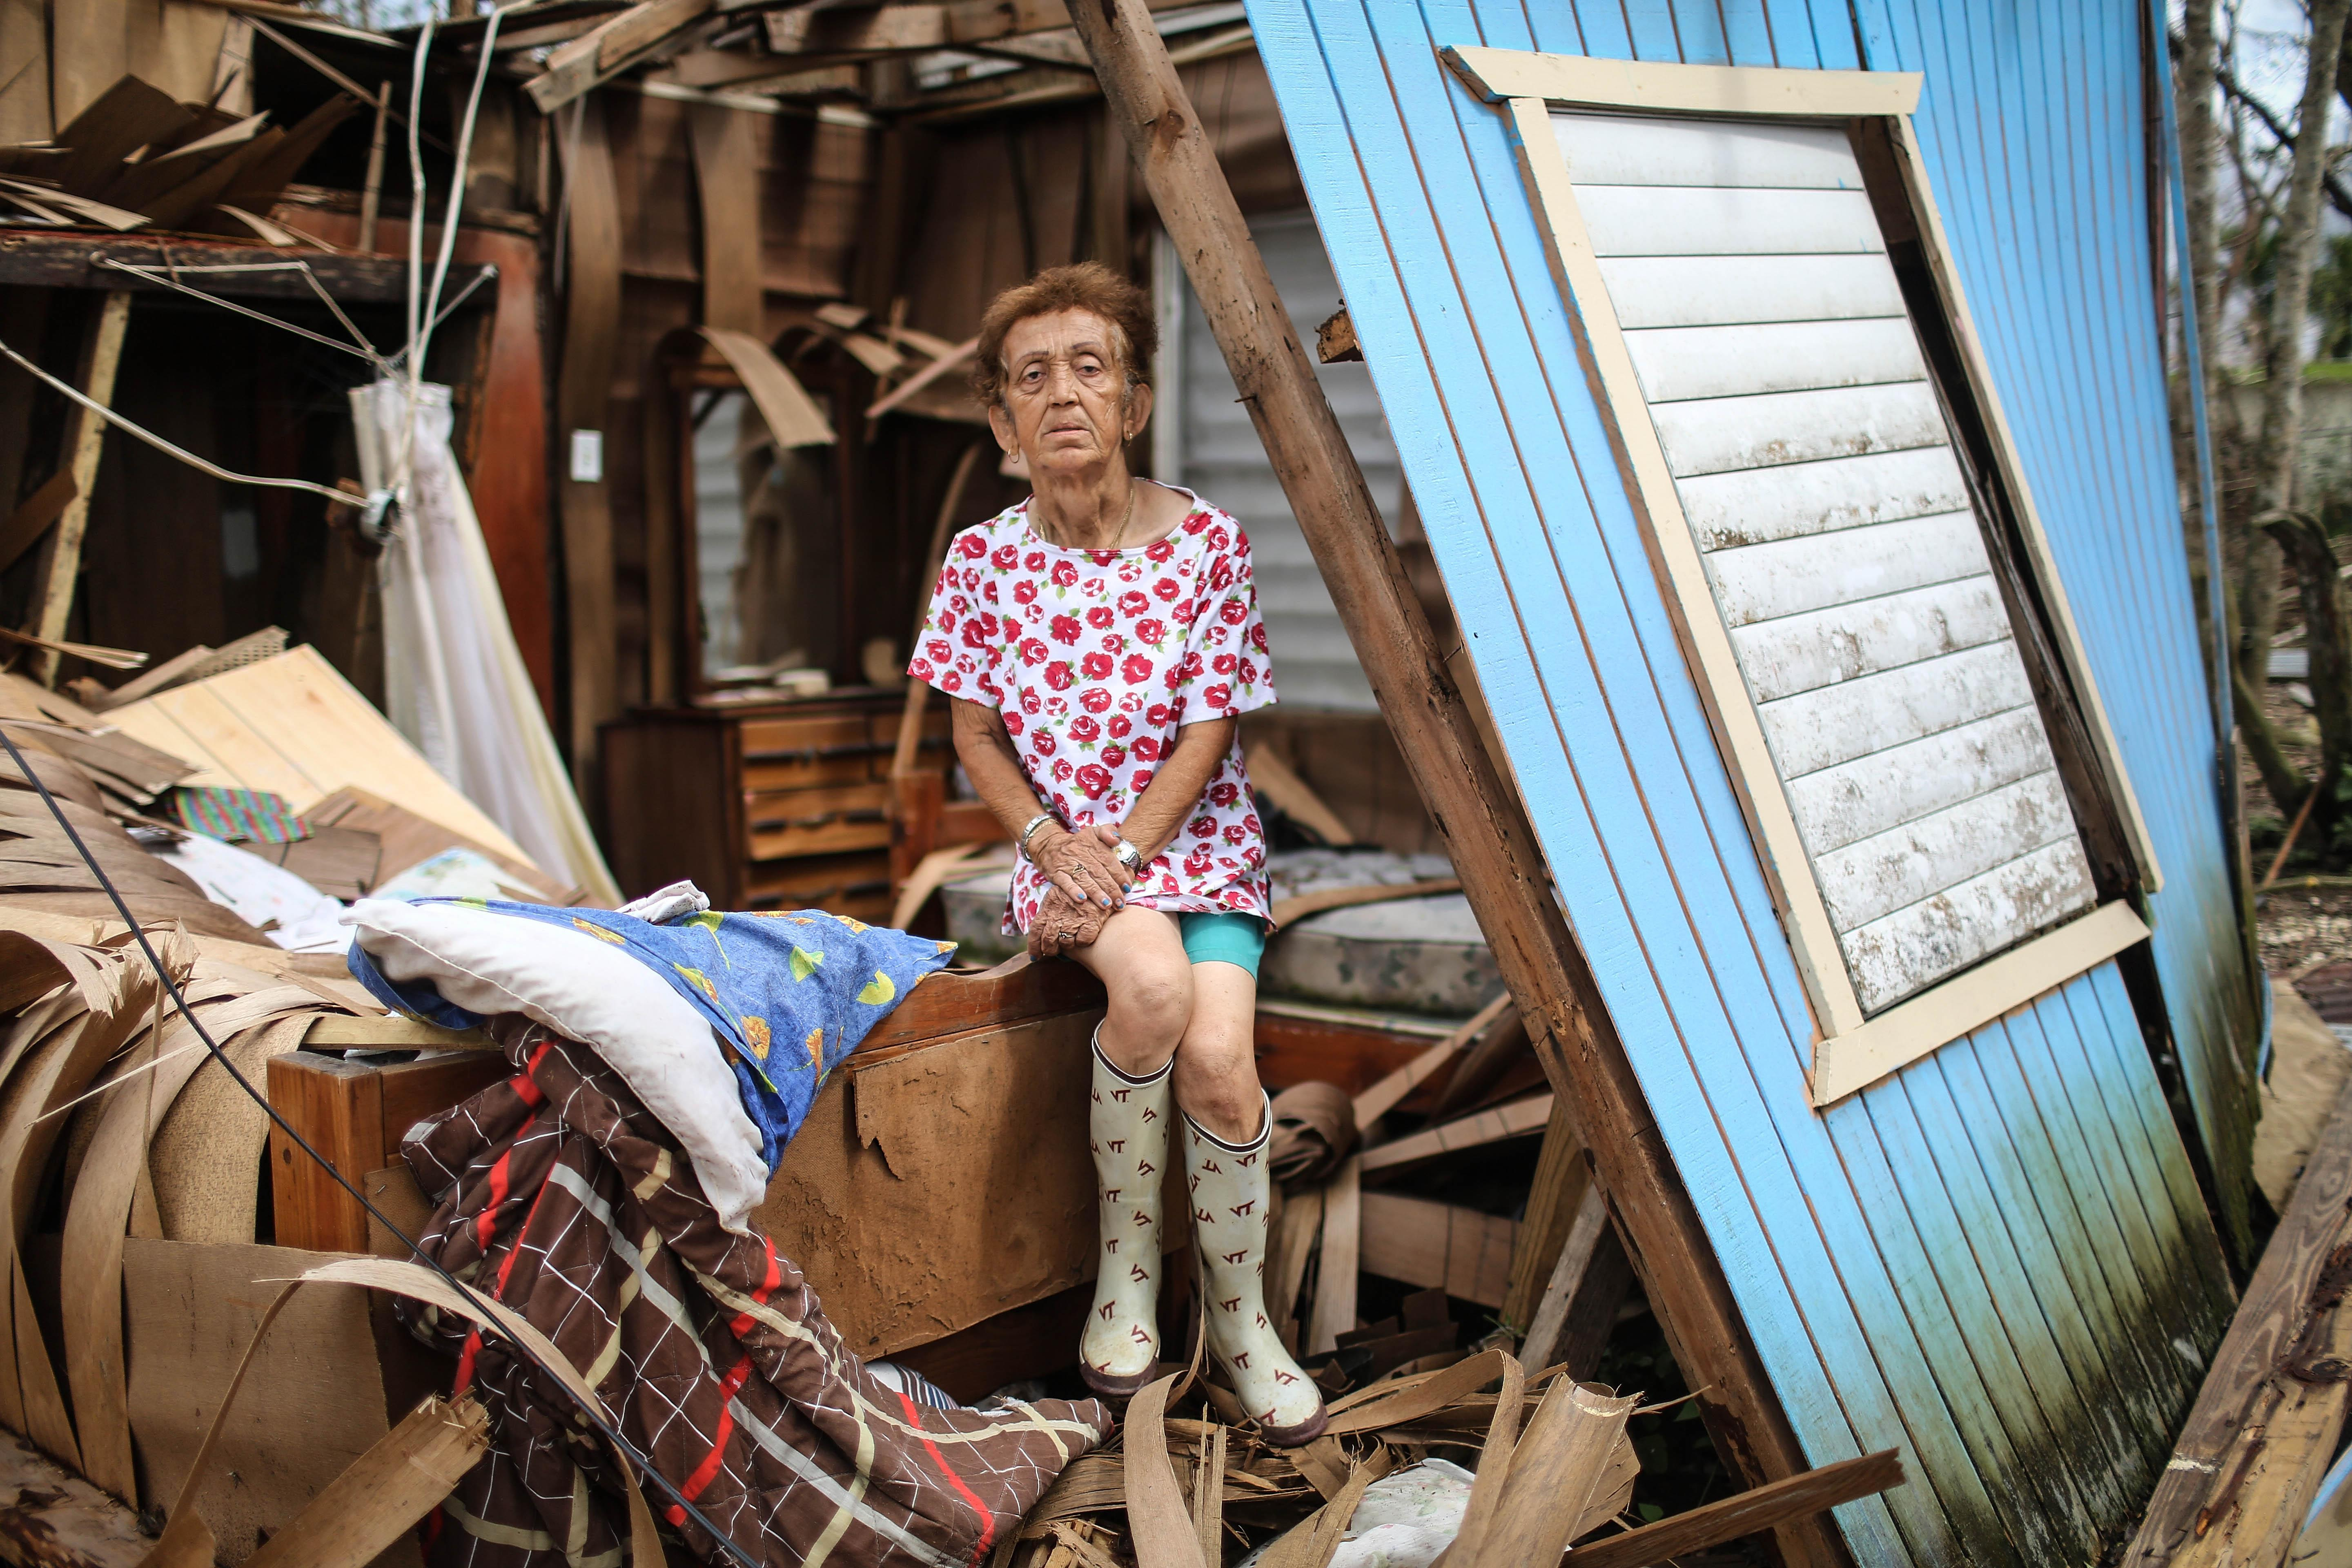 <p>Sonia Torres poses in her destroyed home, while taking a break from cleaning, three weeks after Hurricane Maria hit the island, on Oct. 11, 2017 in Aibonito, Puerto Rico. (Photo: Mario Tama/Getty Images) </p>